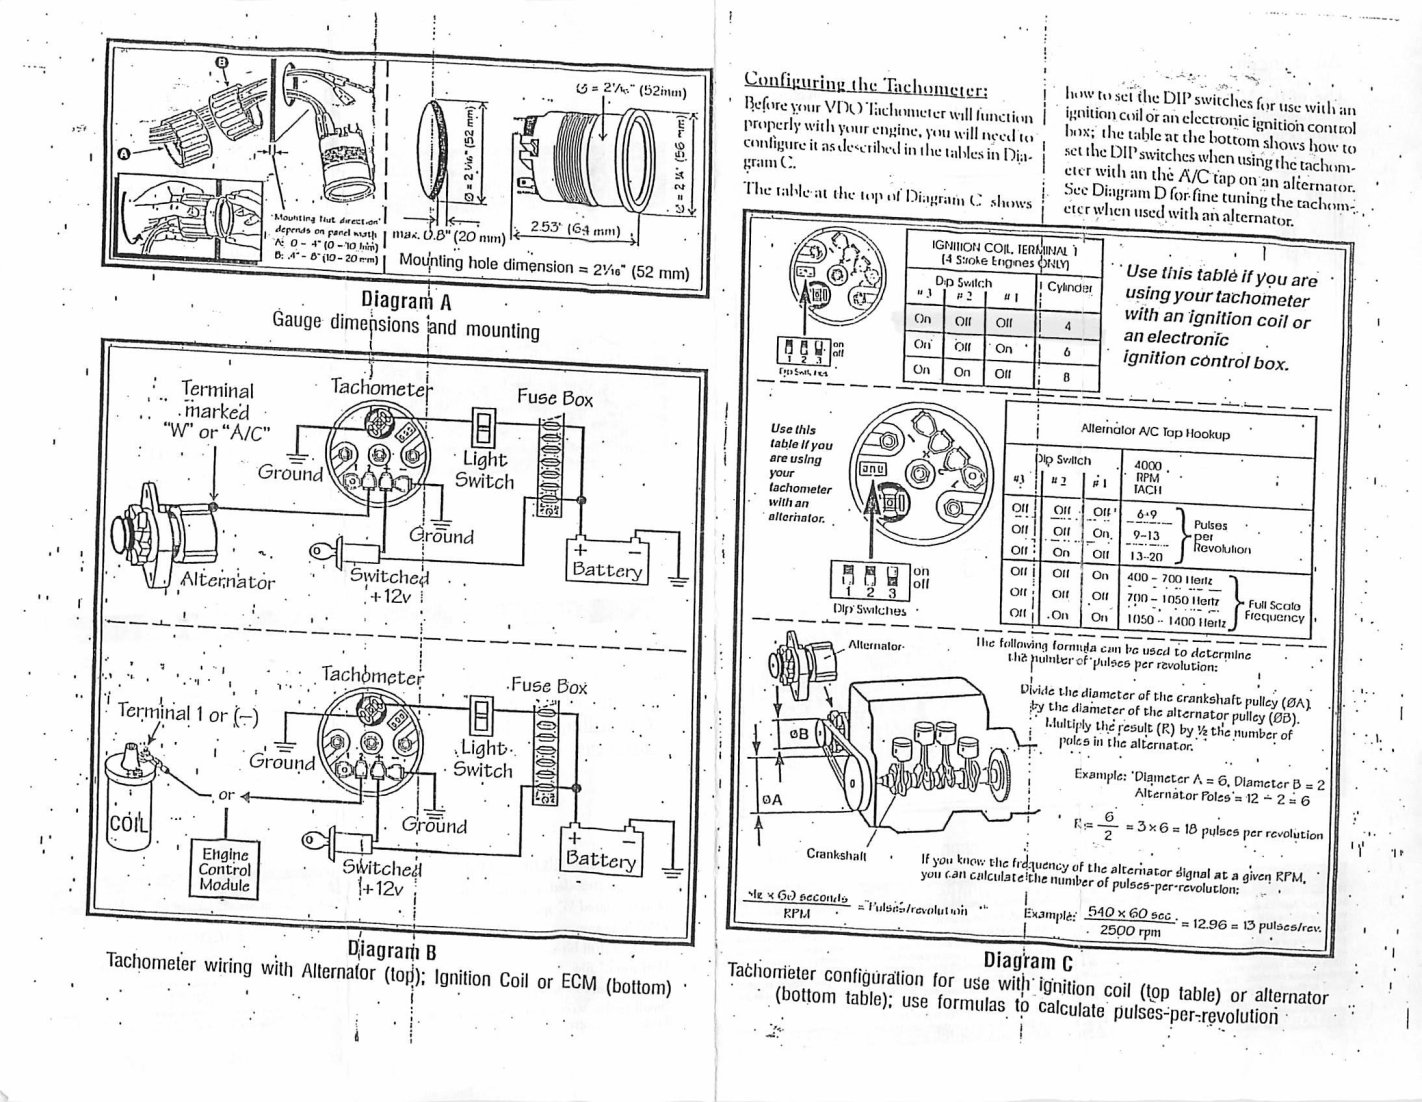 vdo tach wiring wire data u2022 rh 173 199 115 152 VDO Oil Pressure Wiring Diagrams VDO Ammeter Wiring Diagrams